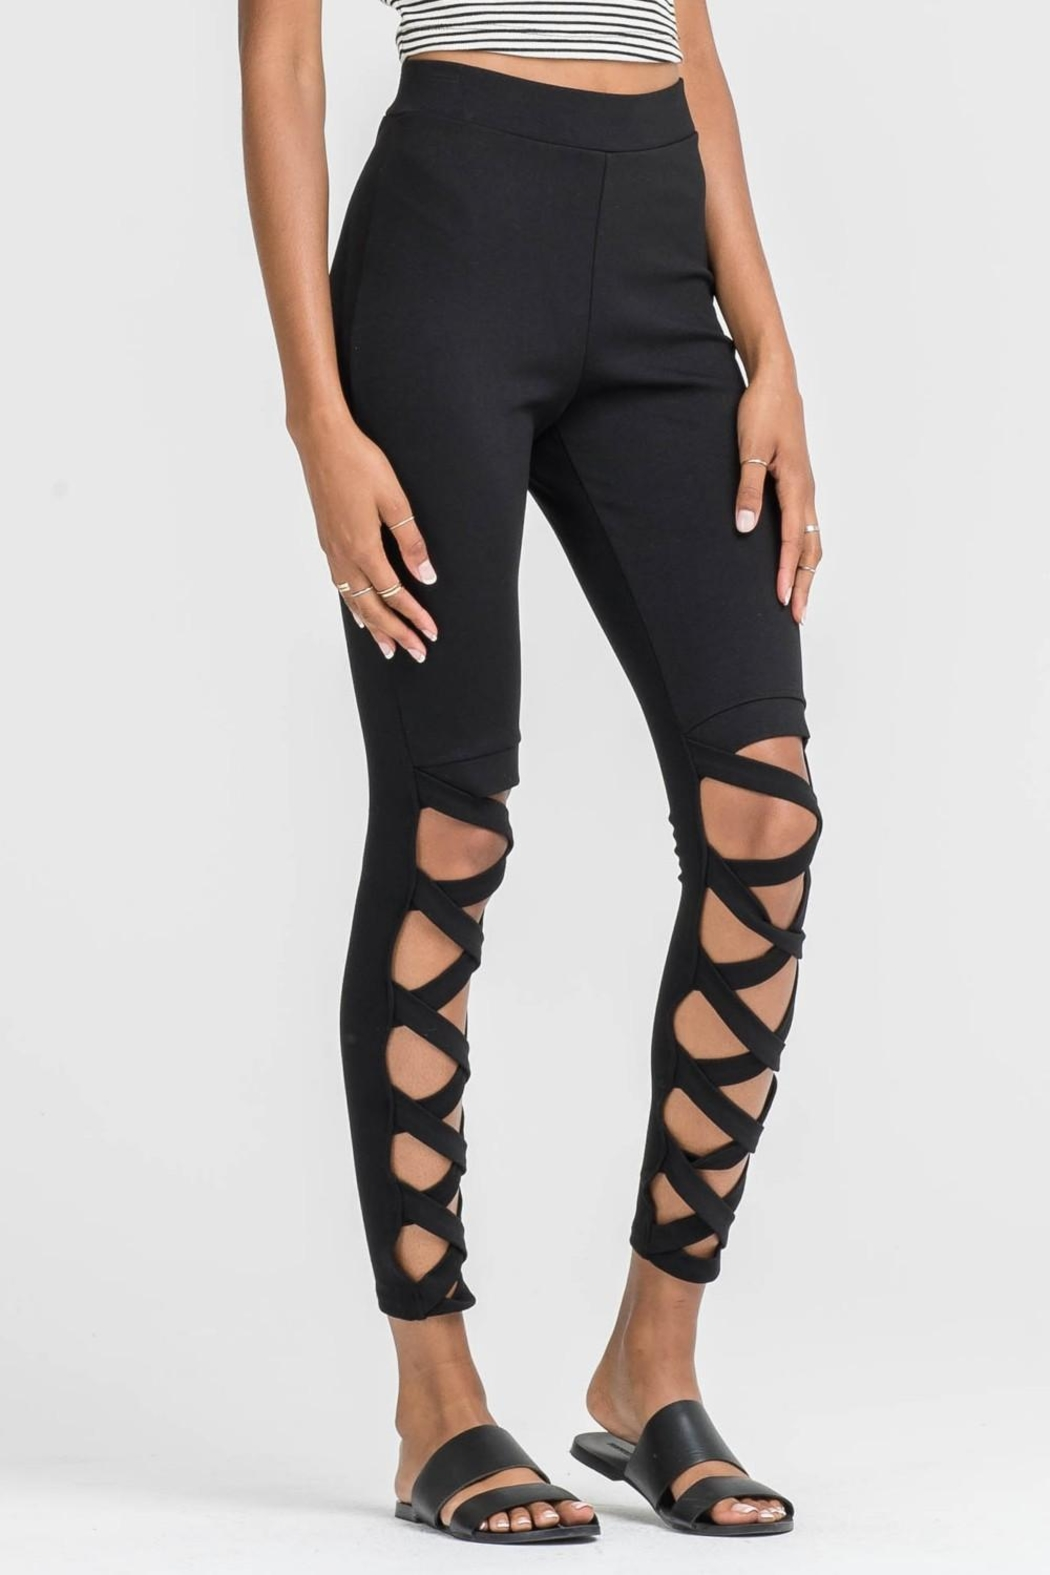 Lush Criss Cross Leggings - Front Cropped Image